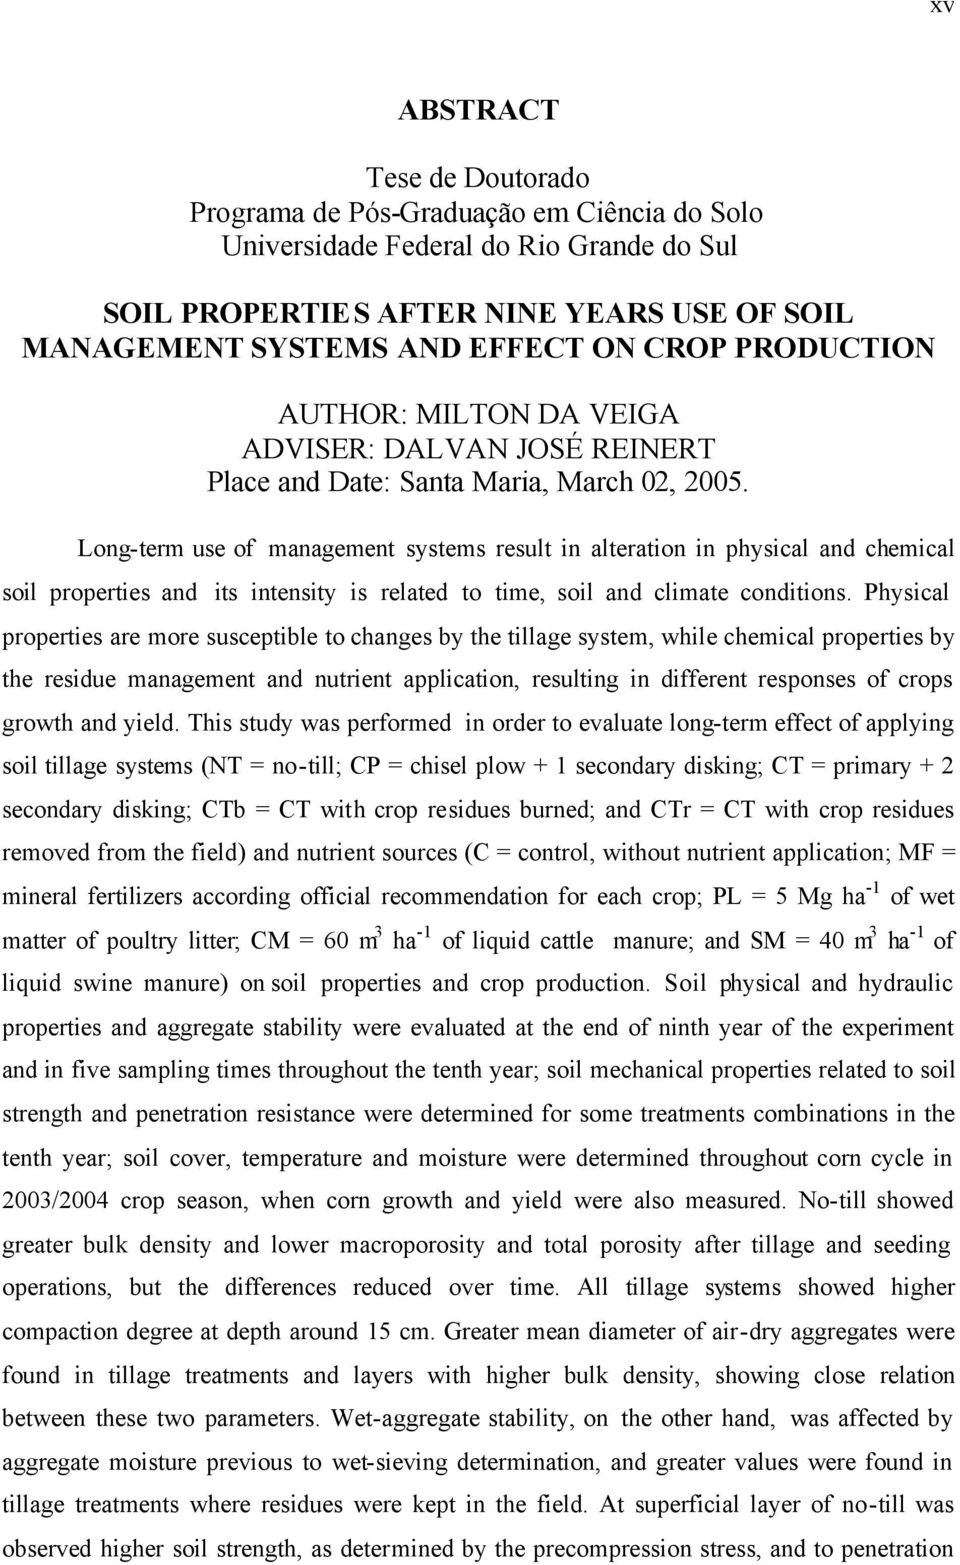 Long-term use of management systems result in alteration in physical and chemical soil properties and its intensity is related to time, soil and climate conditions.